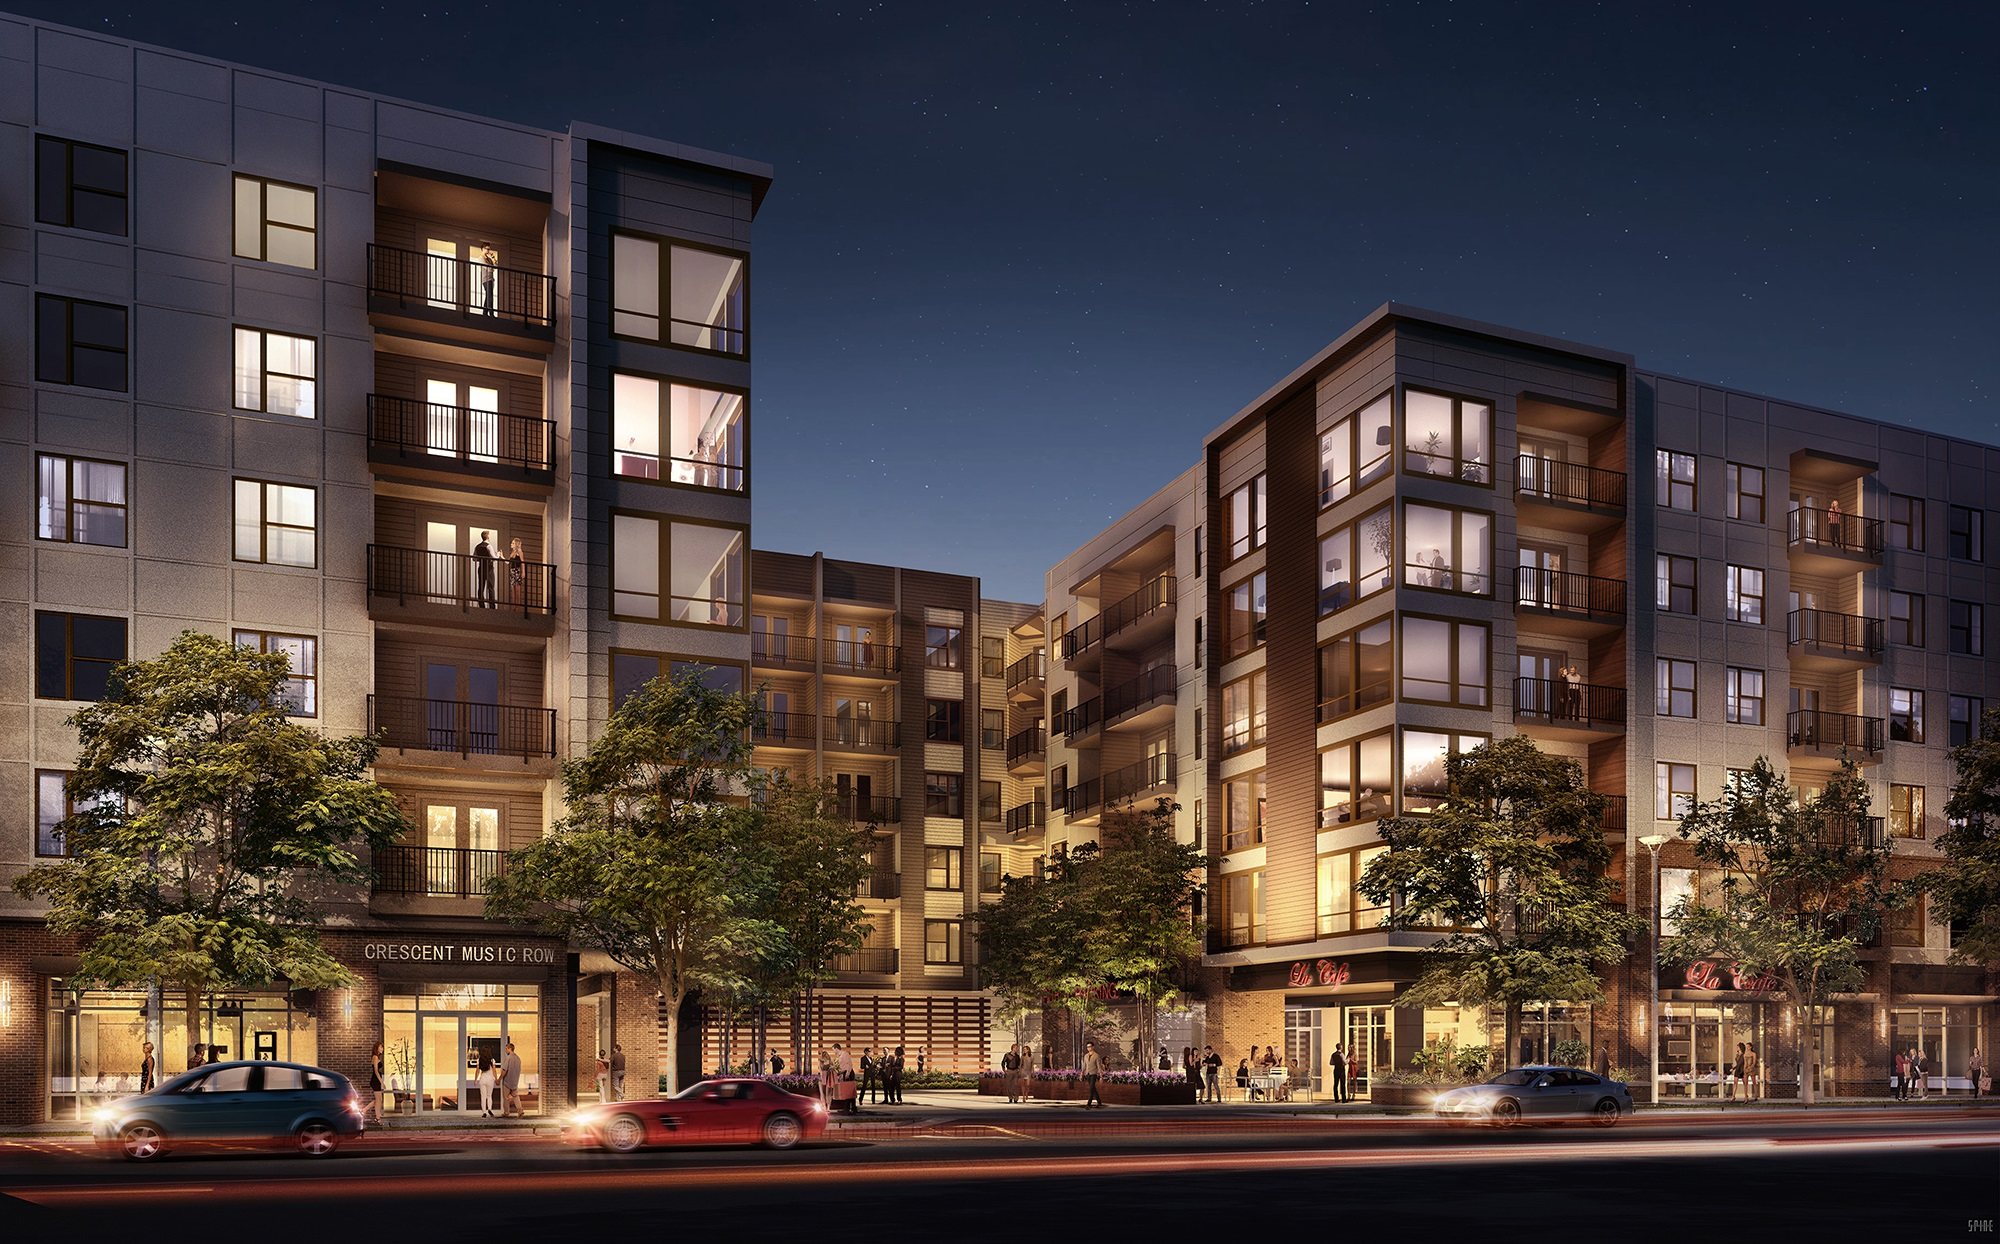 premiere properties group crescent music row